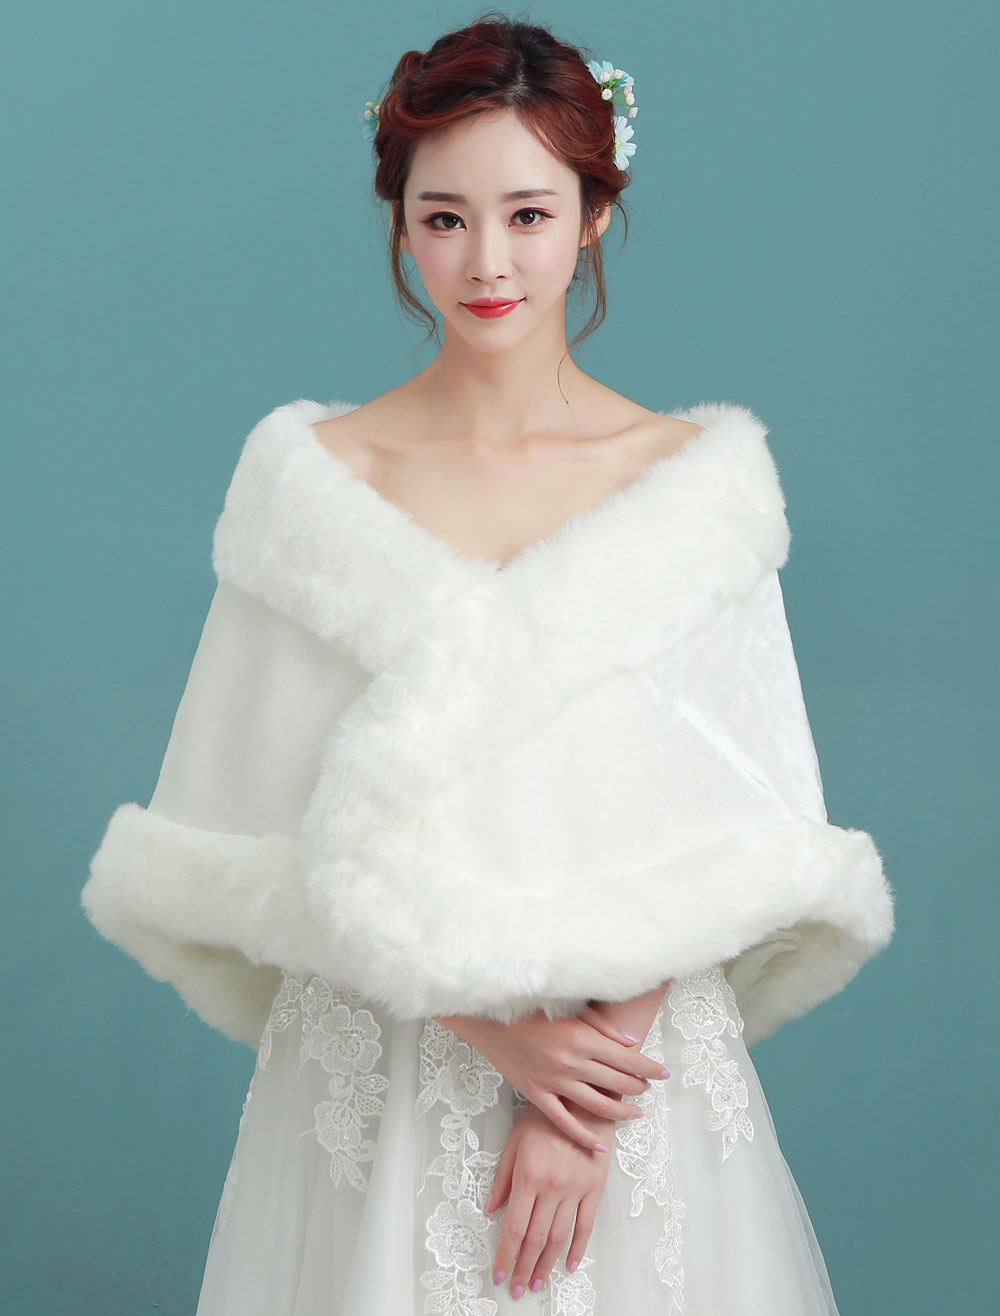 Buy Faux Fur Stole Wedding Angora Bridal Ivory Winter Wrap for $22.49 in Milanoo store